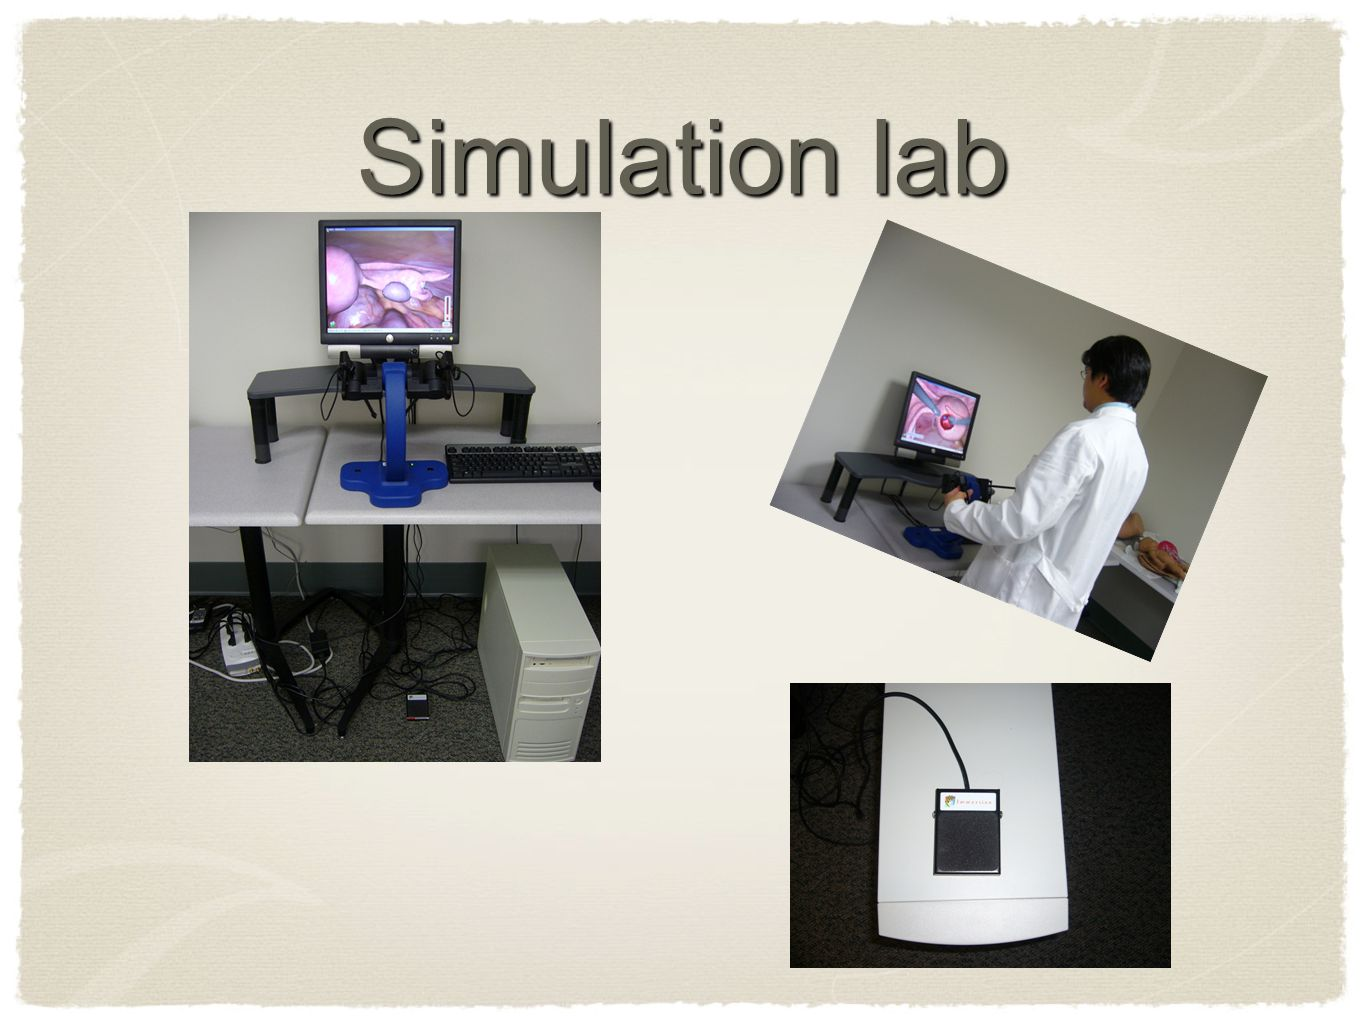 Simulation lab